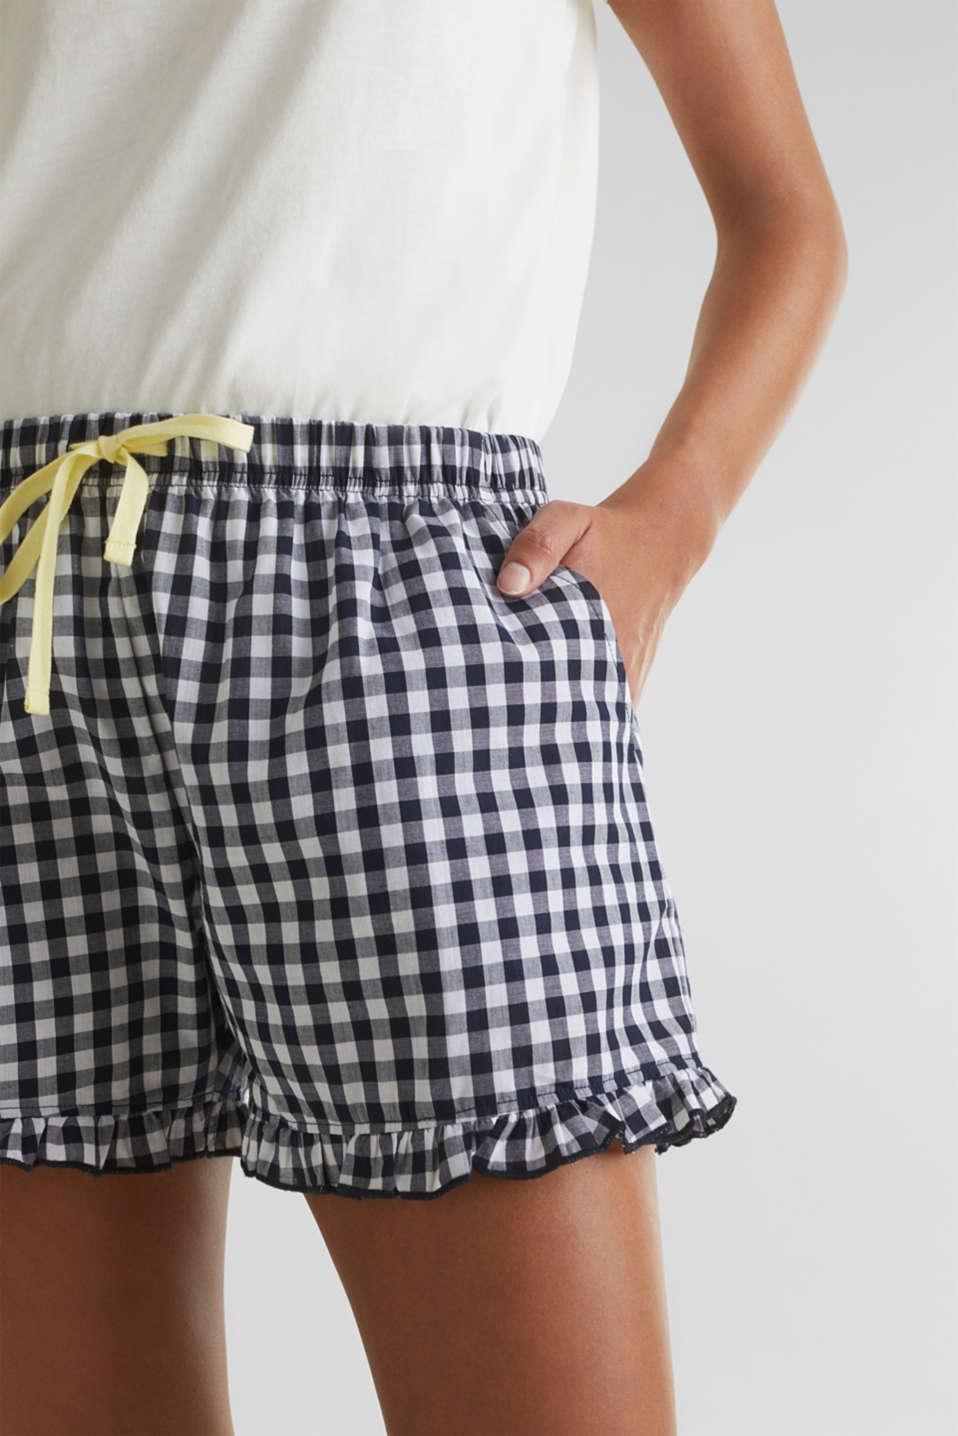 Woven shorts with frills, 100% cotton, NAVY 2, detail image number 1